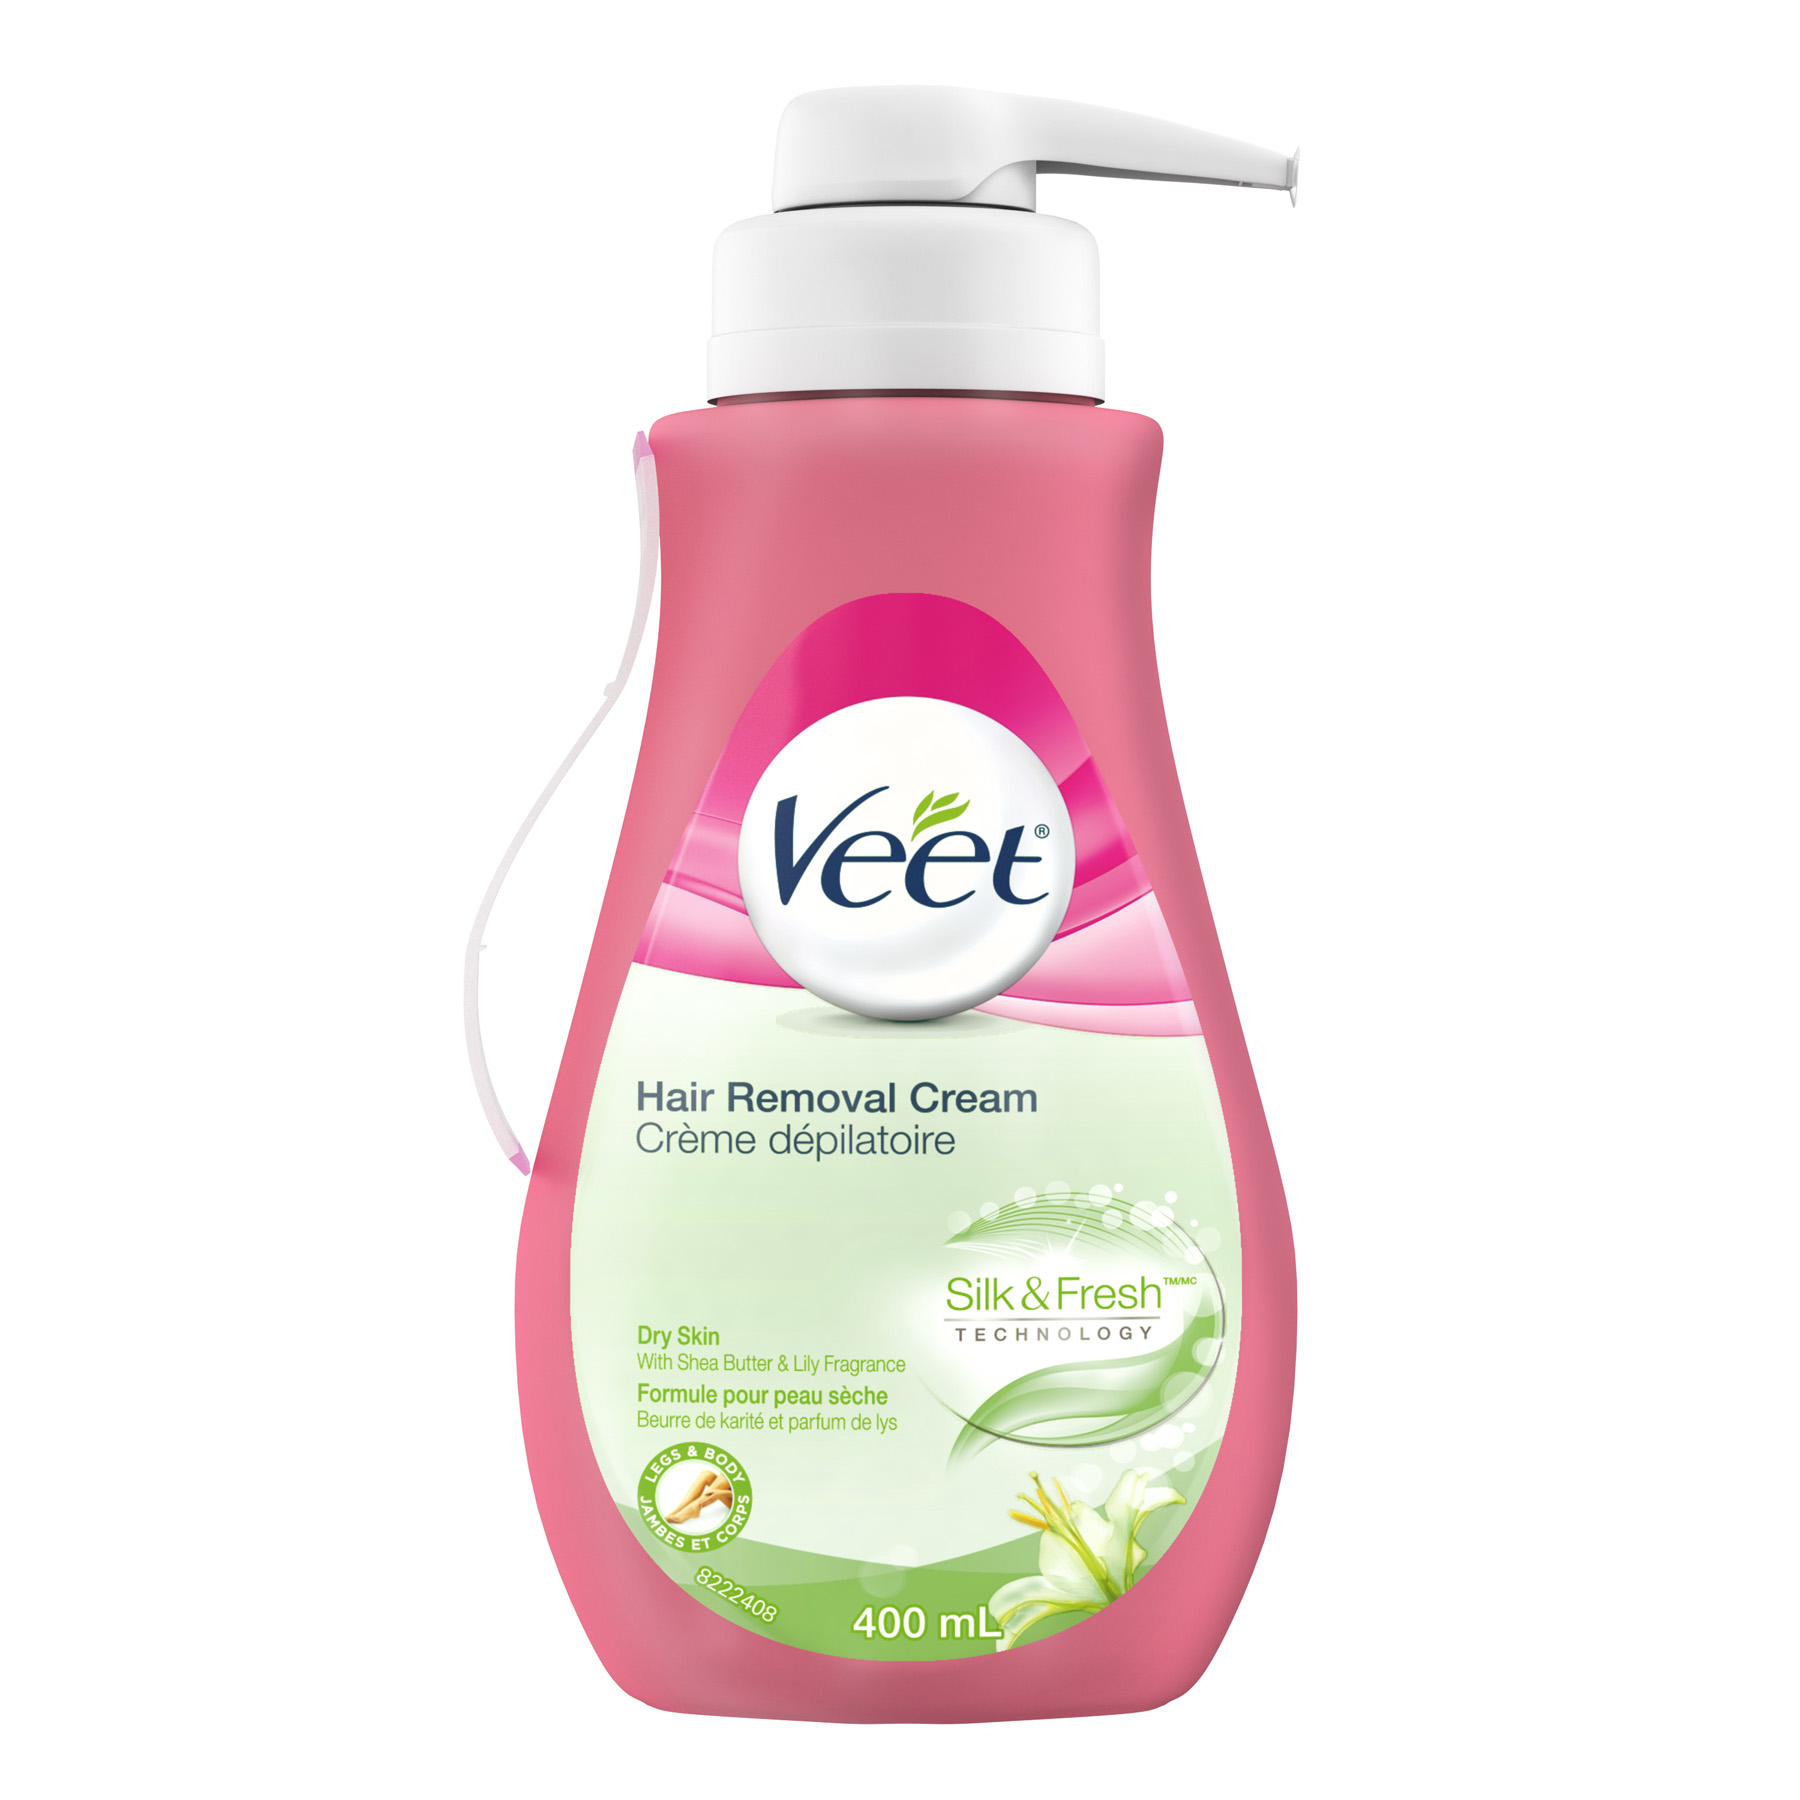 VEET® Silk & Fresh™ Hair Removal Cream Dry Skin - Shea Butter & Lily (Canada)